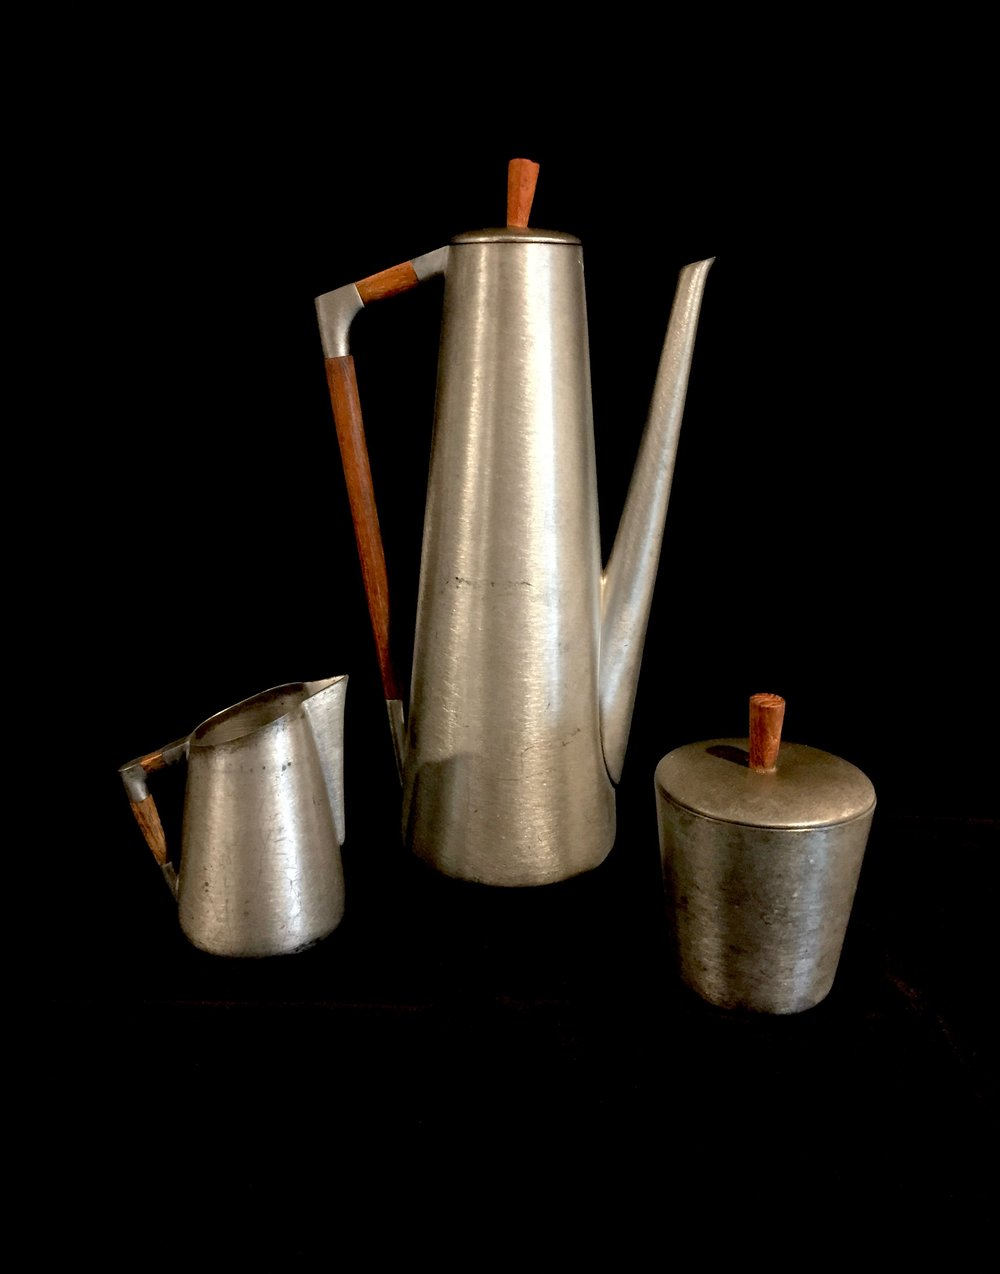 Iconic Midcentury Coffee Serving Set - Pewter and Teak - Made by Royal Holland - Click to view on Etsy